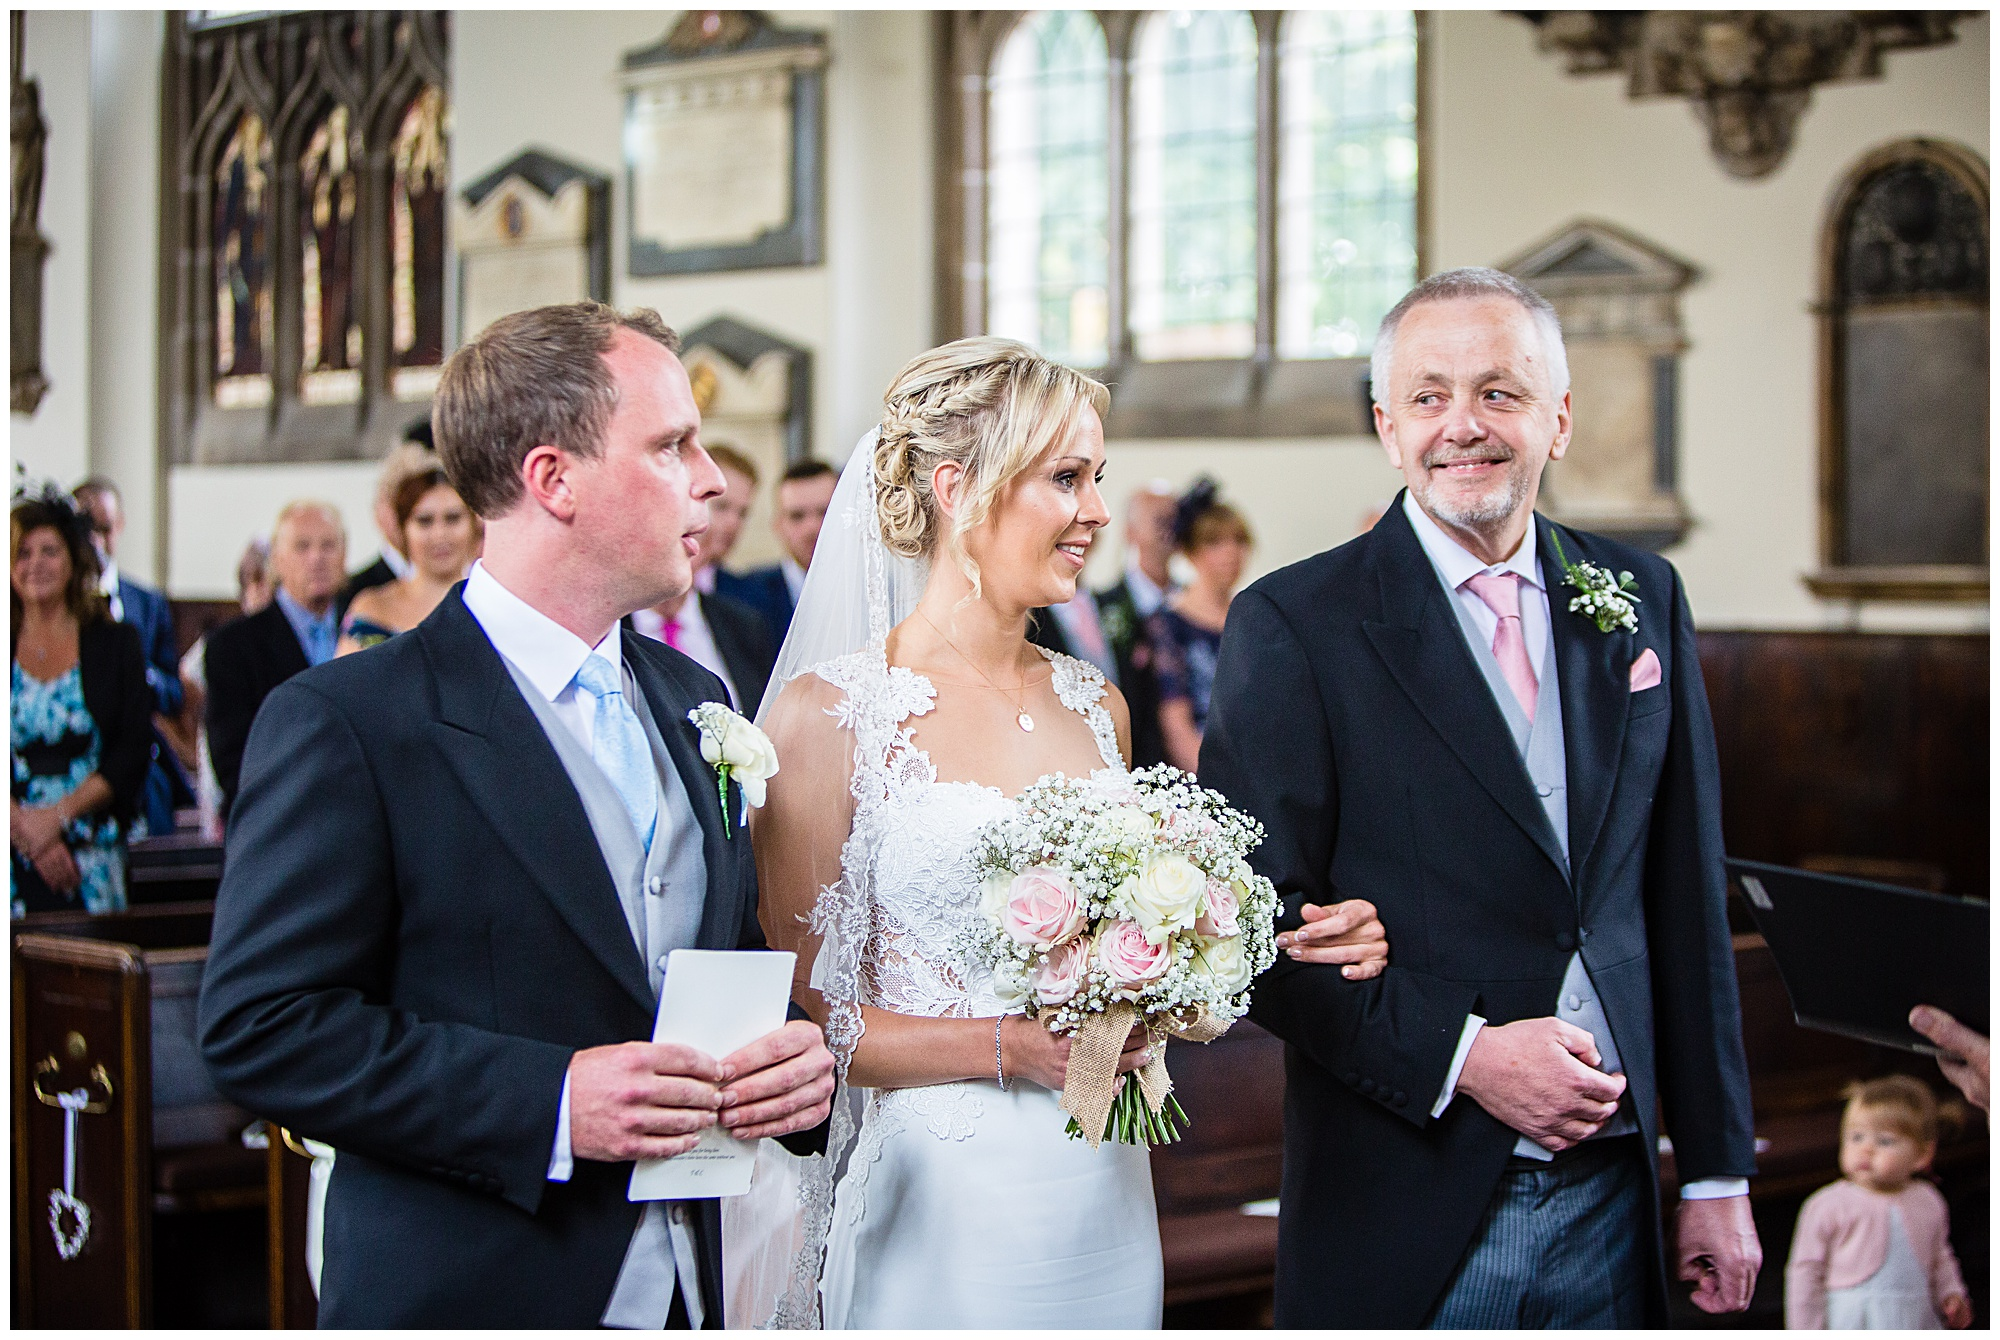 very pleased as punchdad looking at the groom - charlotte giddinngs photography